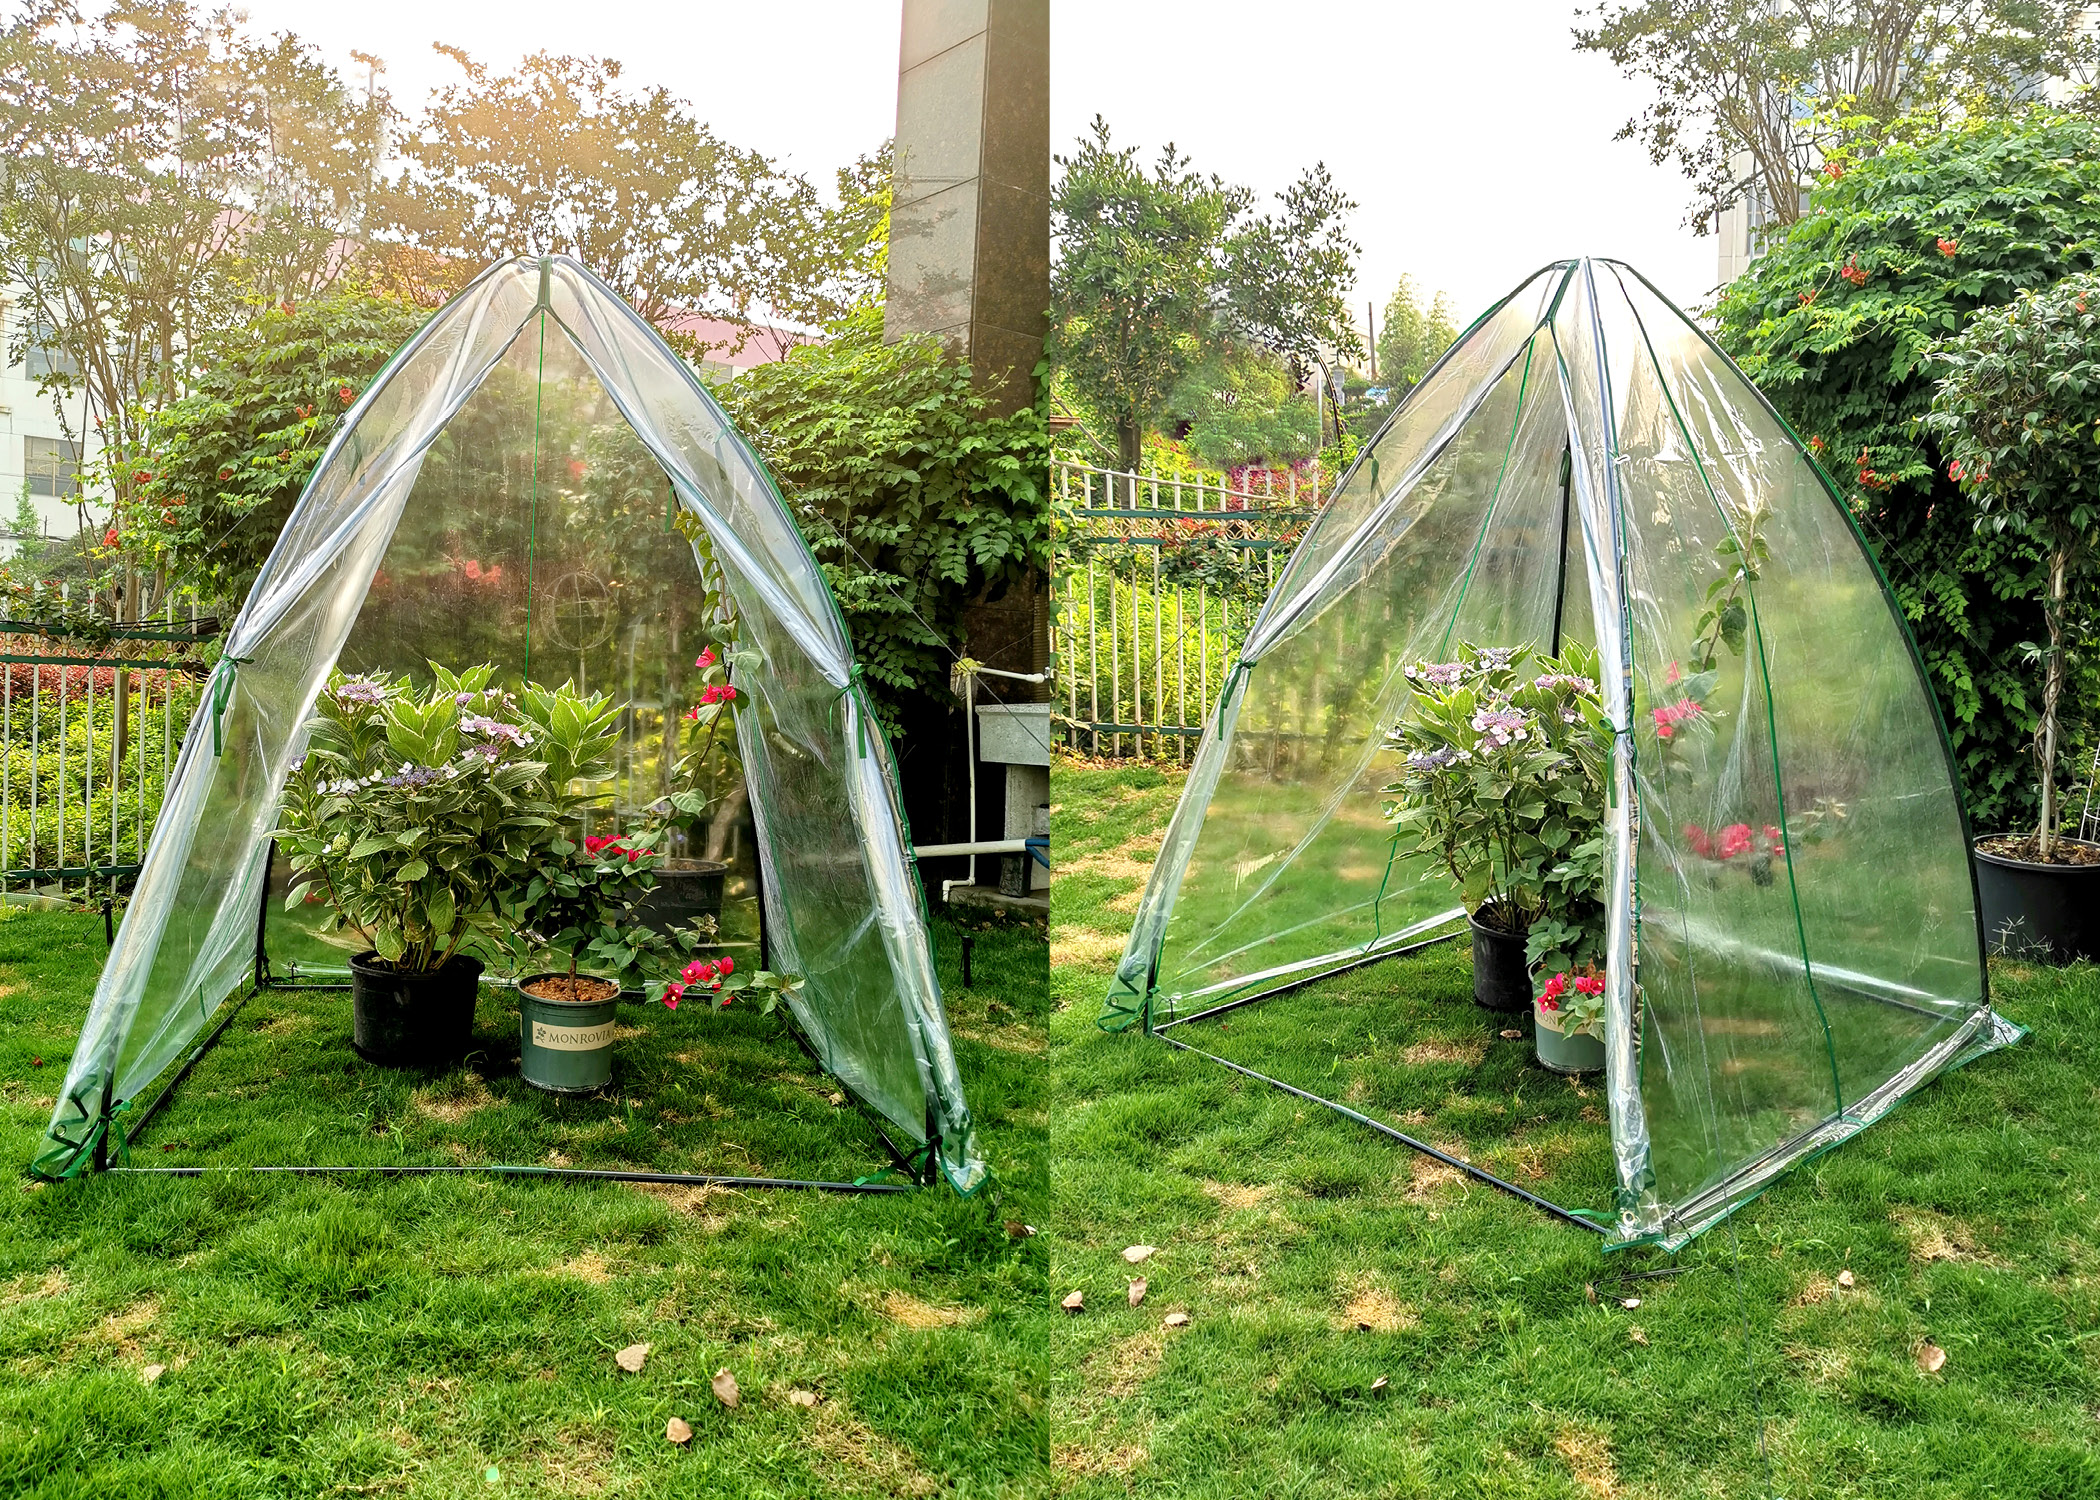 Winter Garden Tent SH3287 Steel Frame, Transparent Cover, 55.1 x 55.1 x 70.9-inches